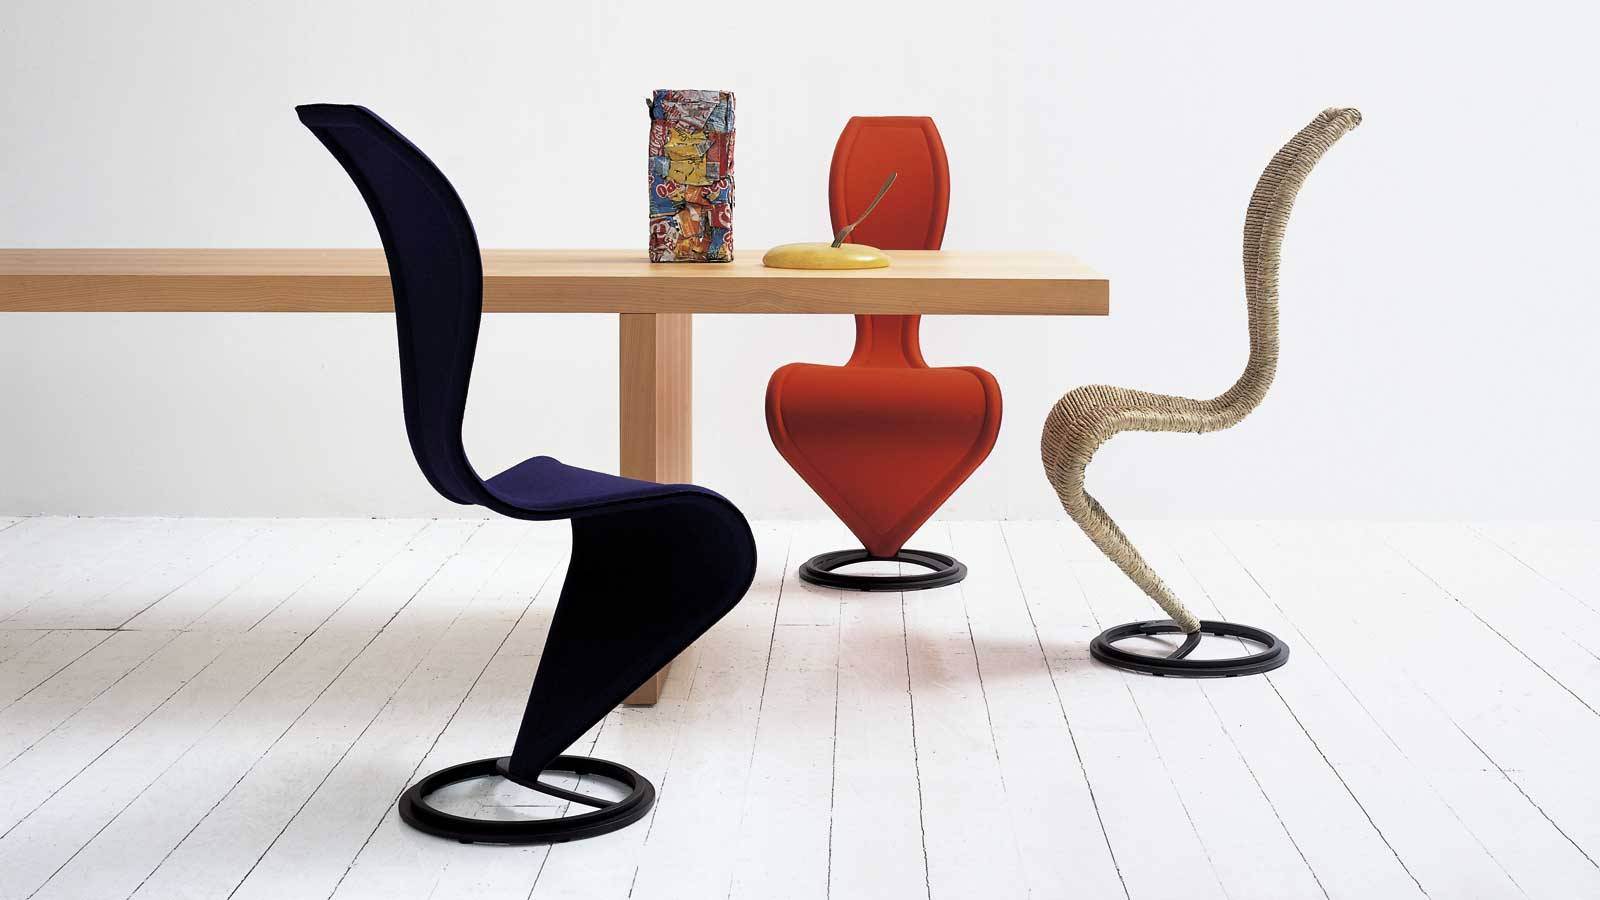 contemporary design furniture by Tom Dixon for Cappellini